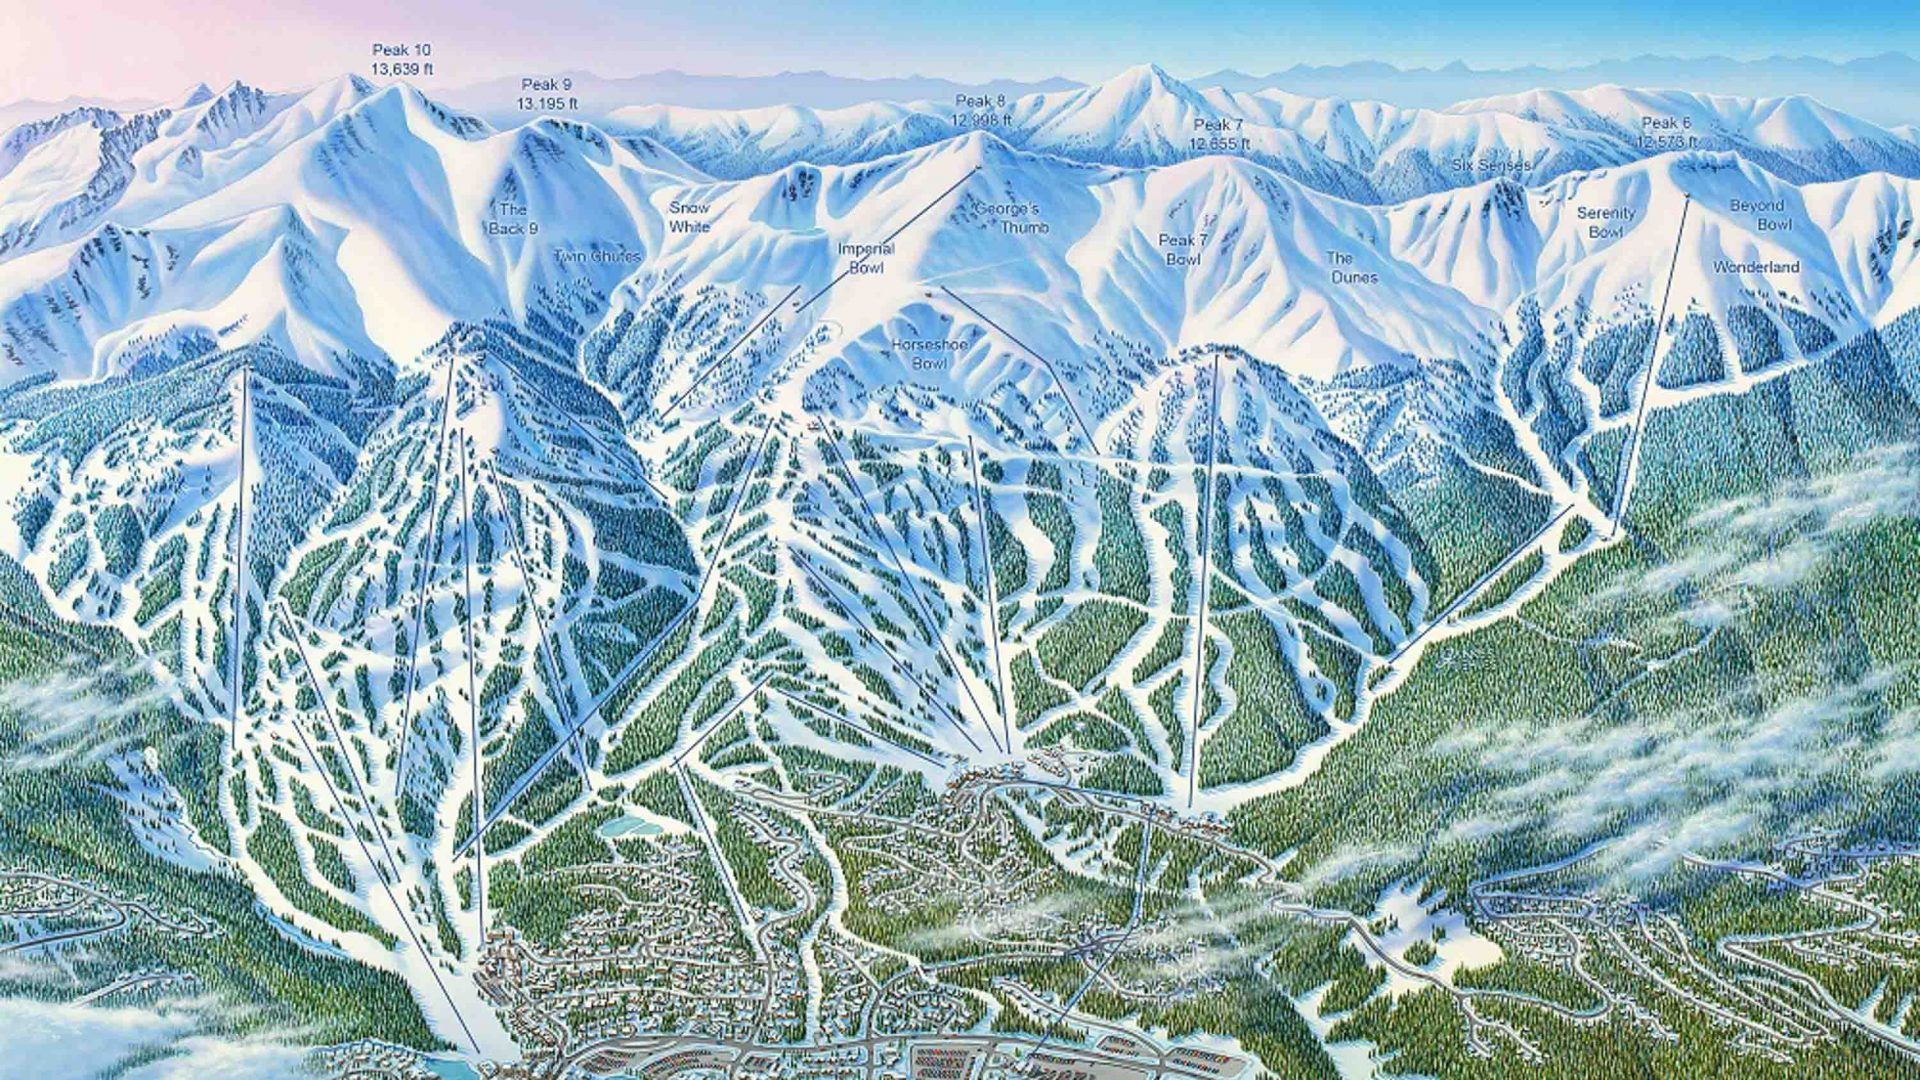 Meet ski map artist James Niehues, the 'Monet of the mountains'